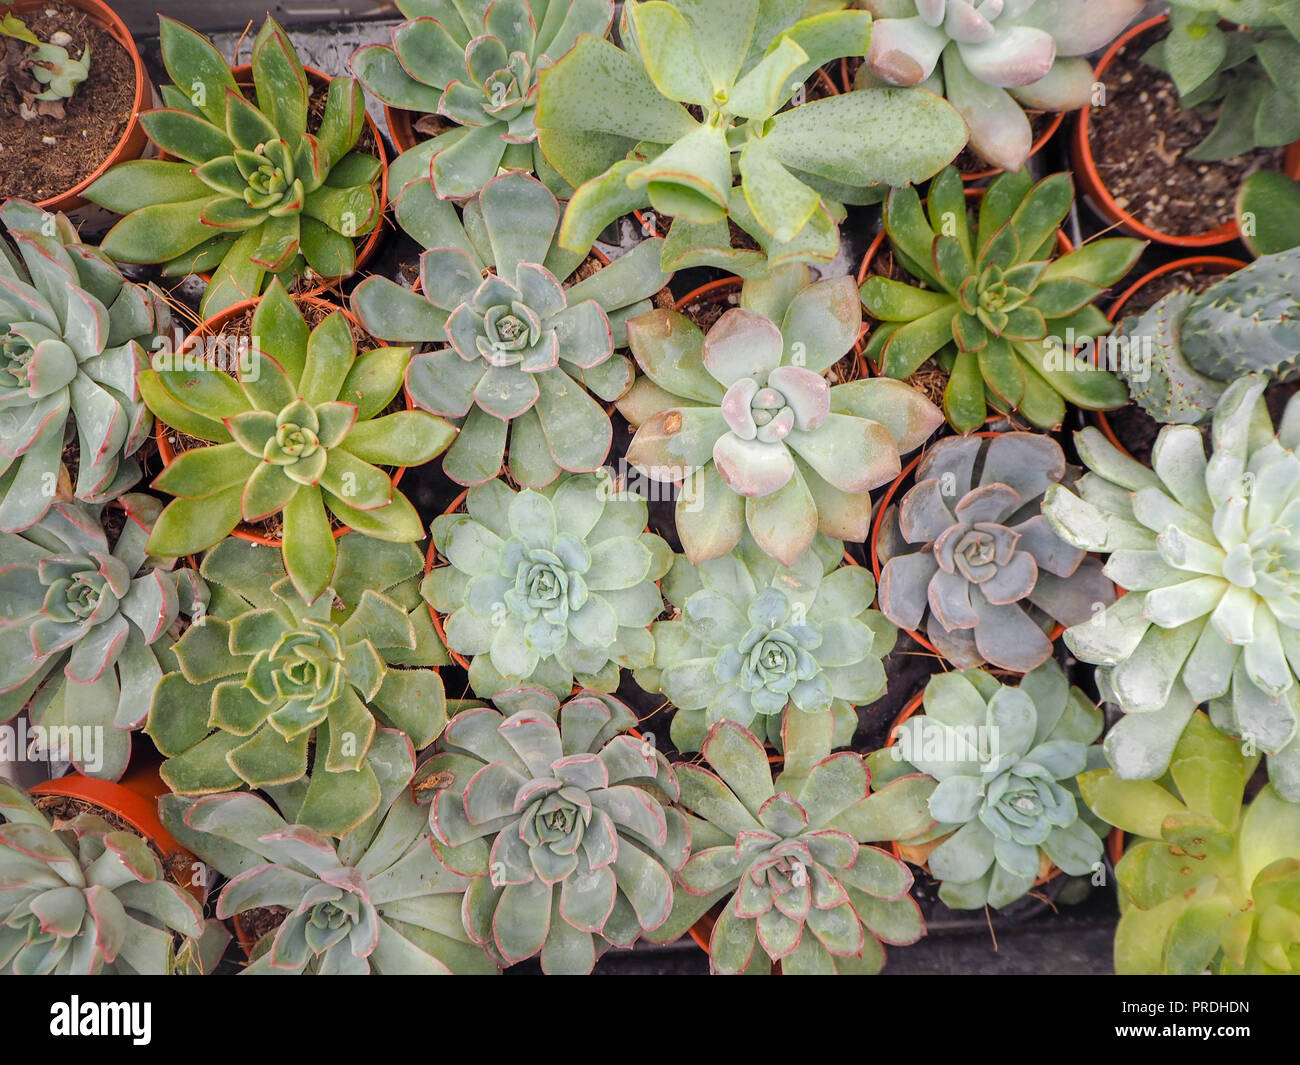 Different small purple and green echeveria succulents ( crassulaceae) aligned next to each other Stock Photo